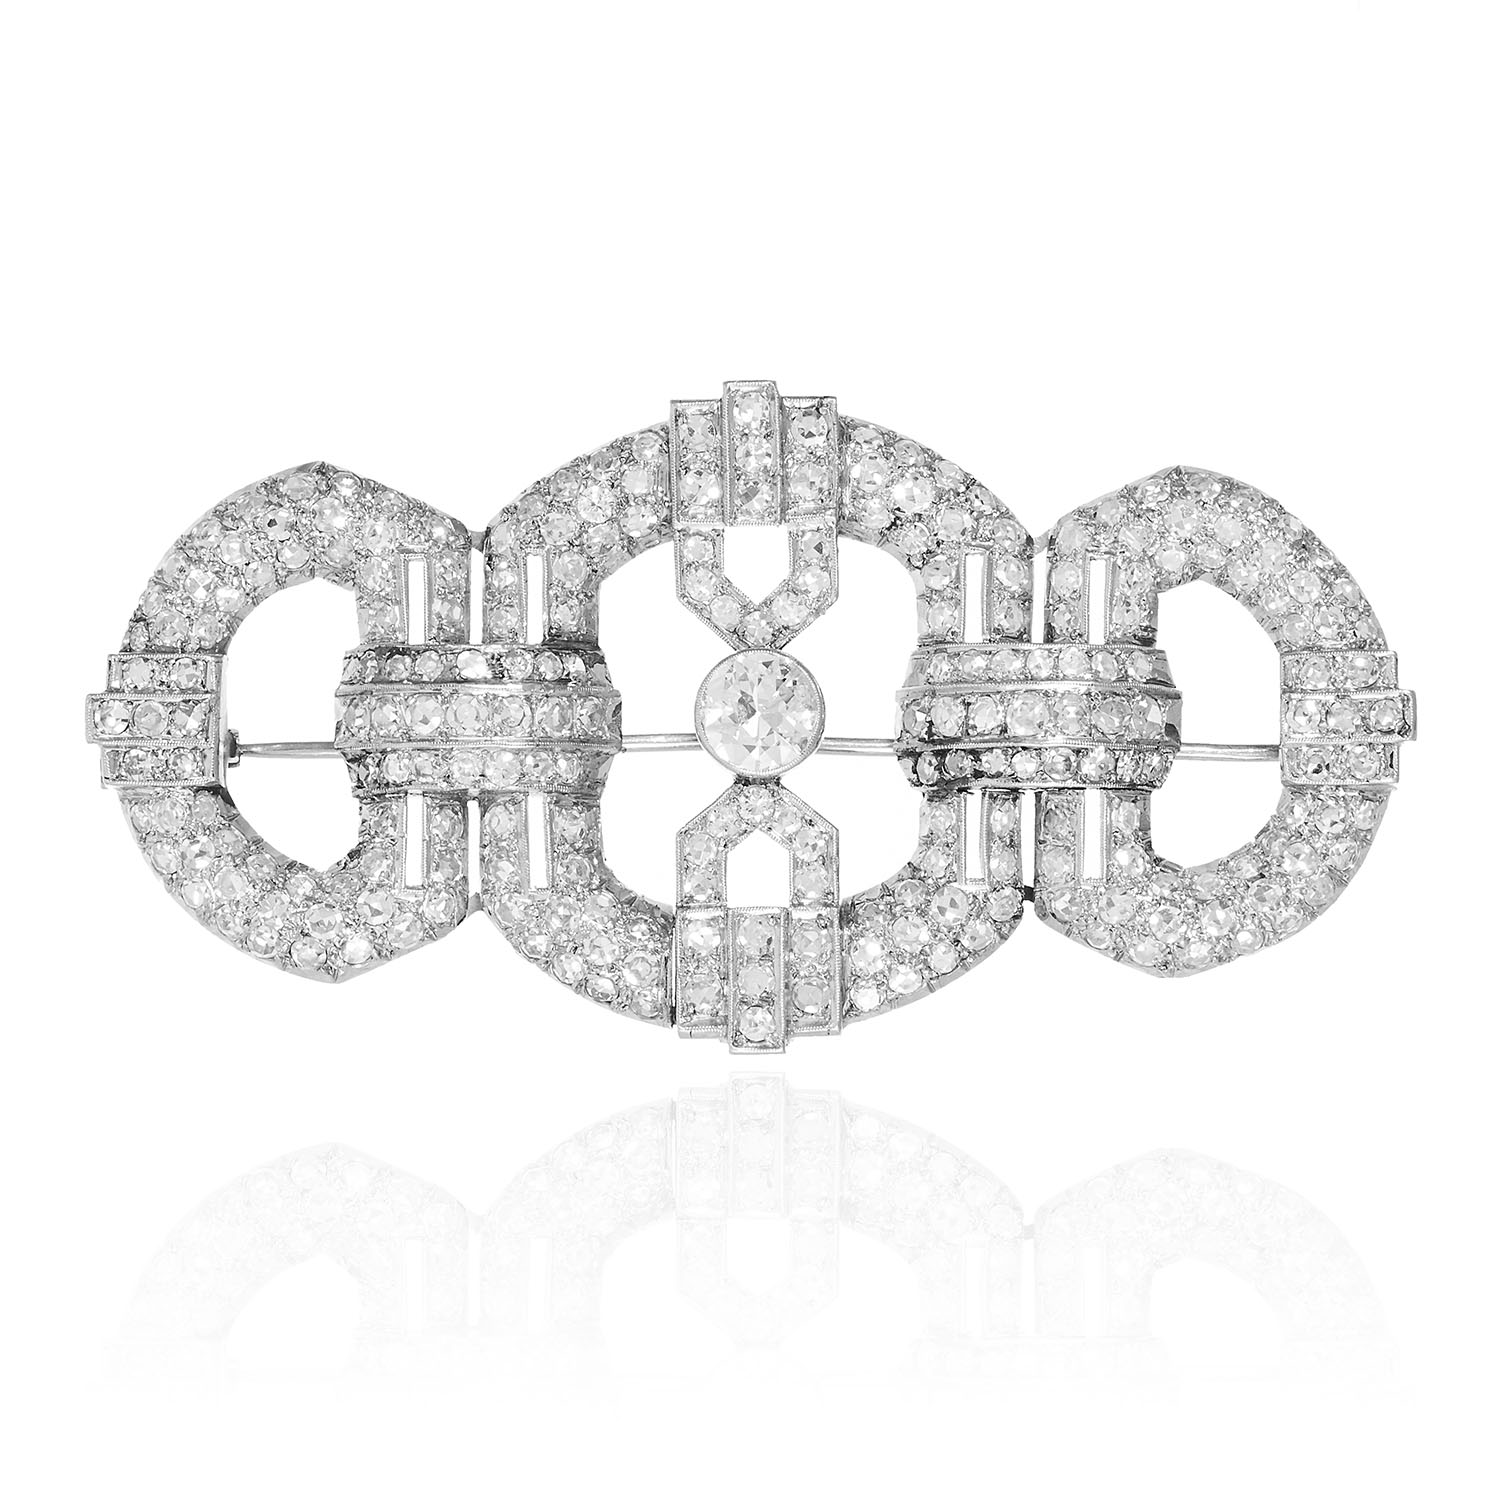 AN ART DECO DIAMOND BROOCH in white gold or platinum, the Art Deco design is set with a central